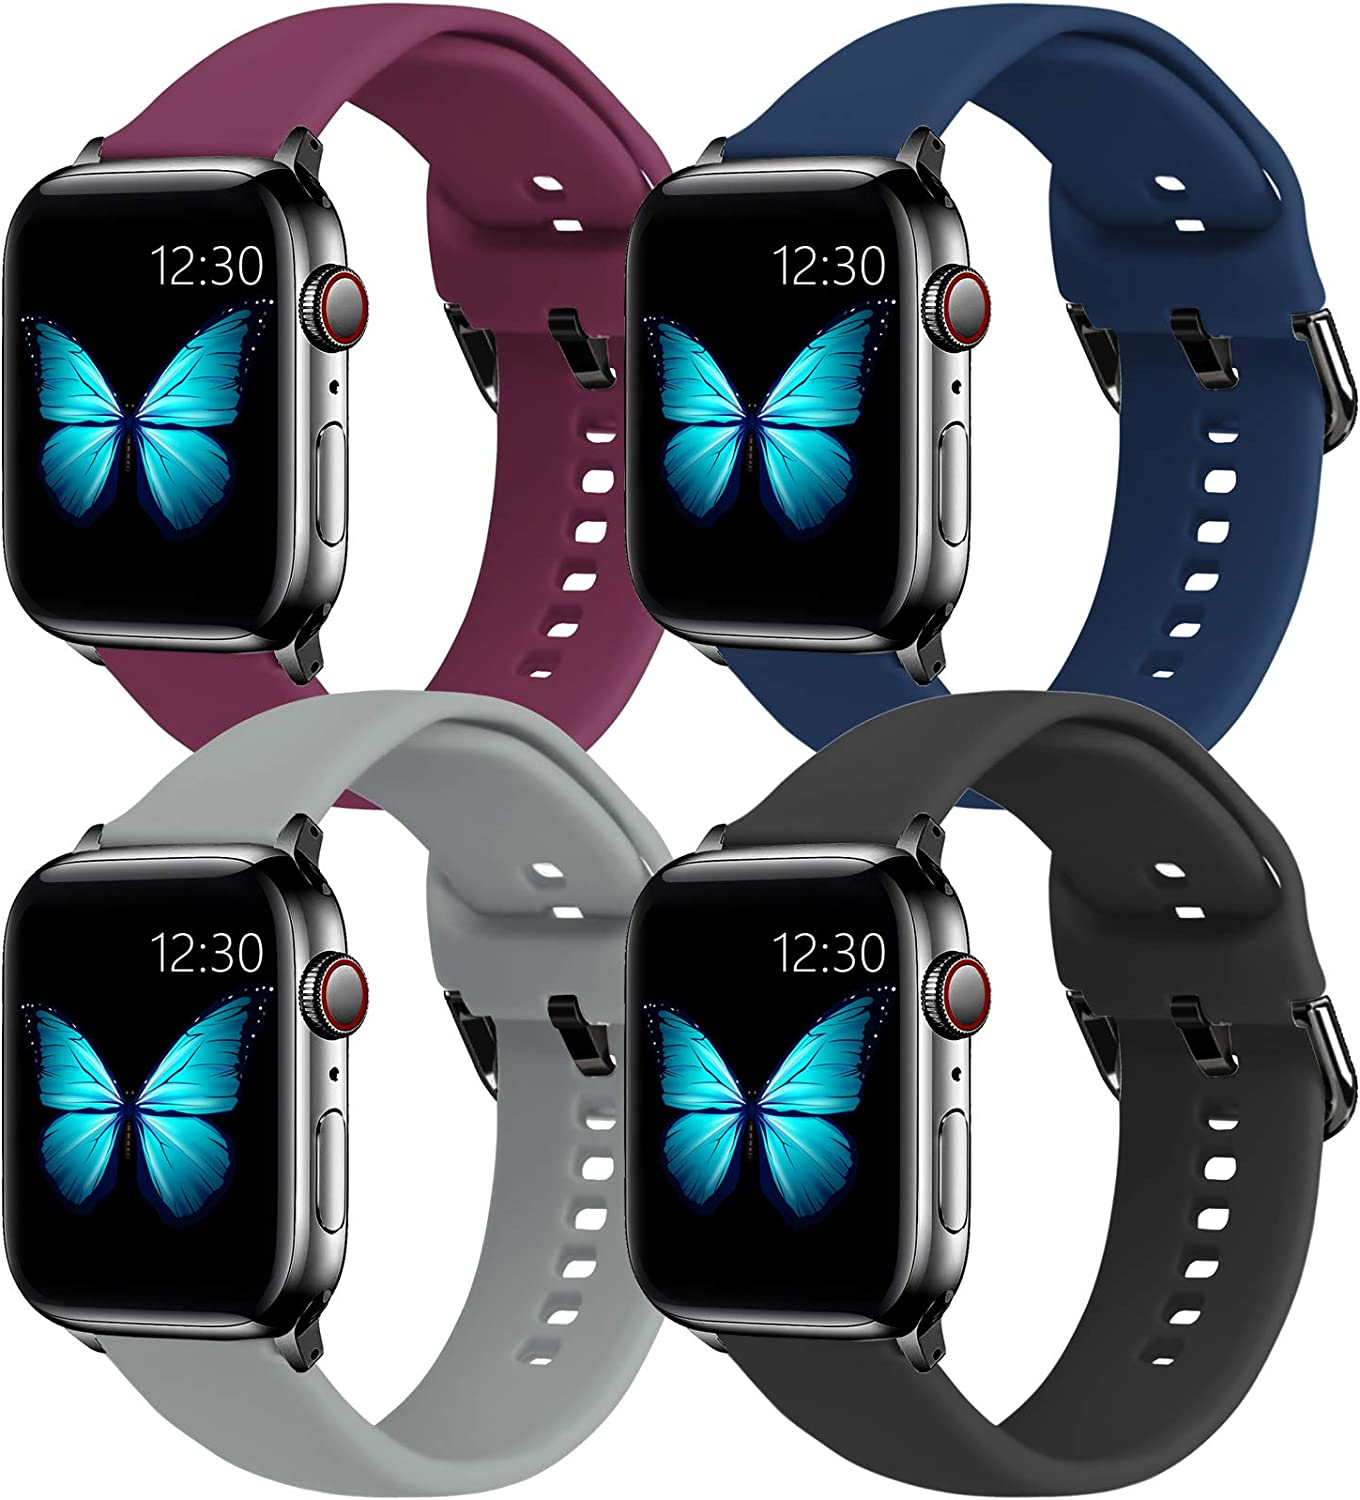 eseekgo 4 Pack Compatible with Apple Watch Band 40mm Series 5 Series 6 SE 4 Series 3 38mm Sport Band, Soft Silicone Bands for iWatch Series 2 1 for Women Men [Black+Gray+Navy+Fuchsia, S/M]